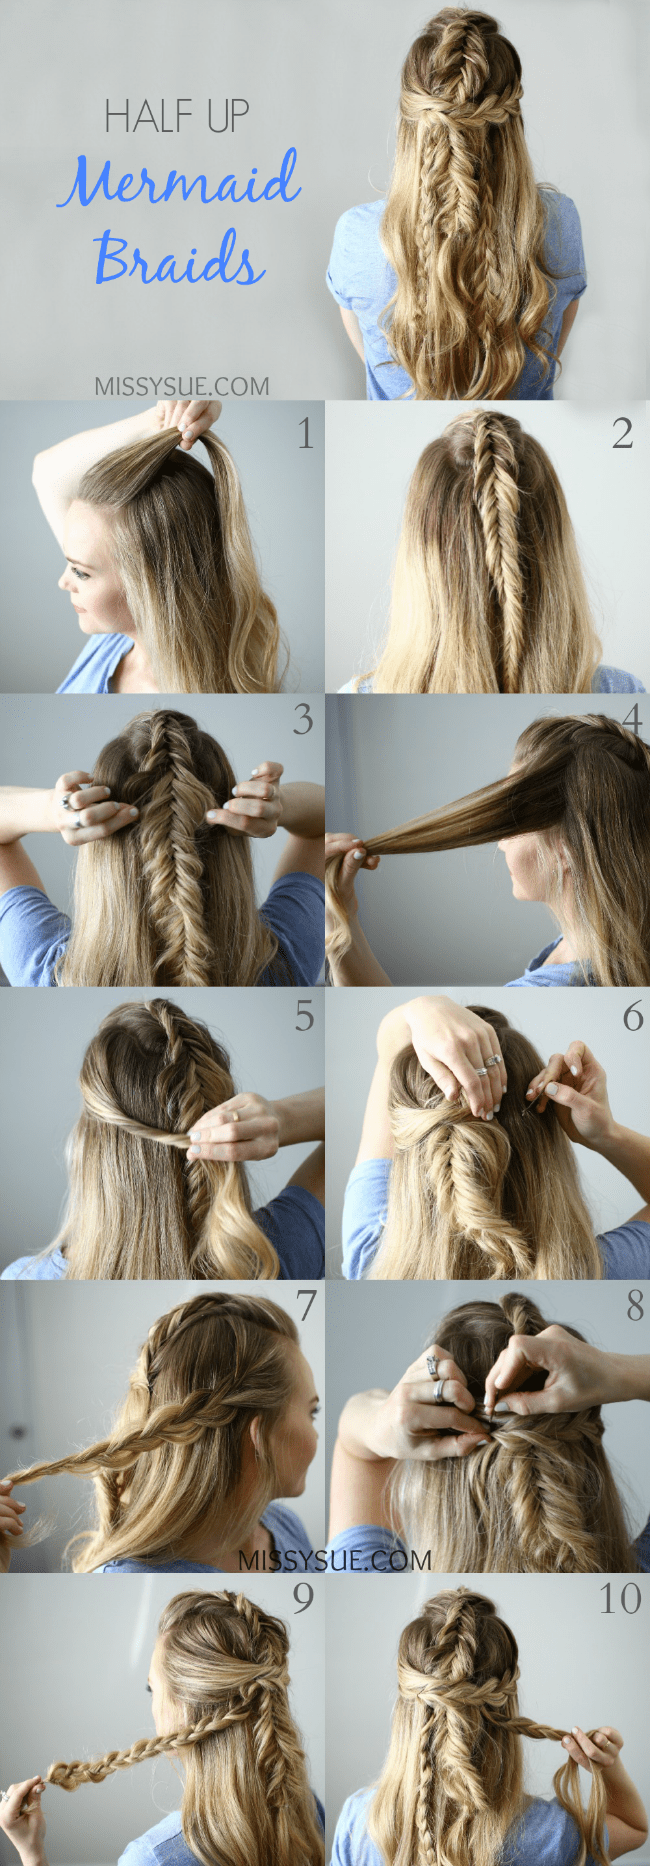 half-up-mermaid-hair-tutorial